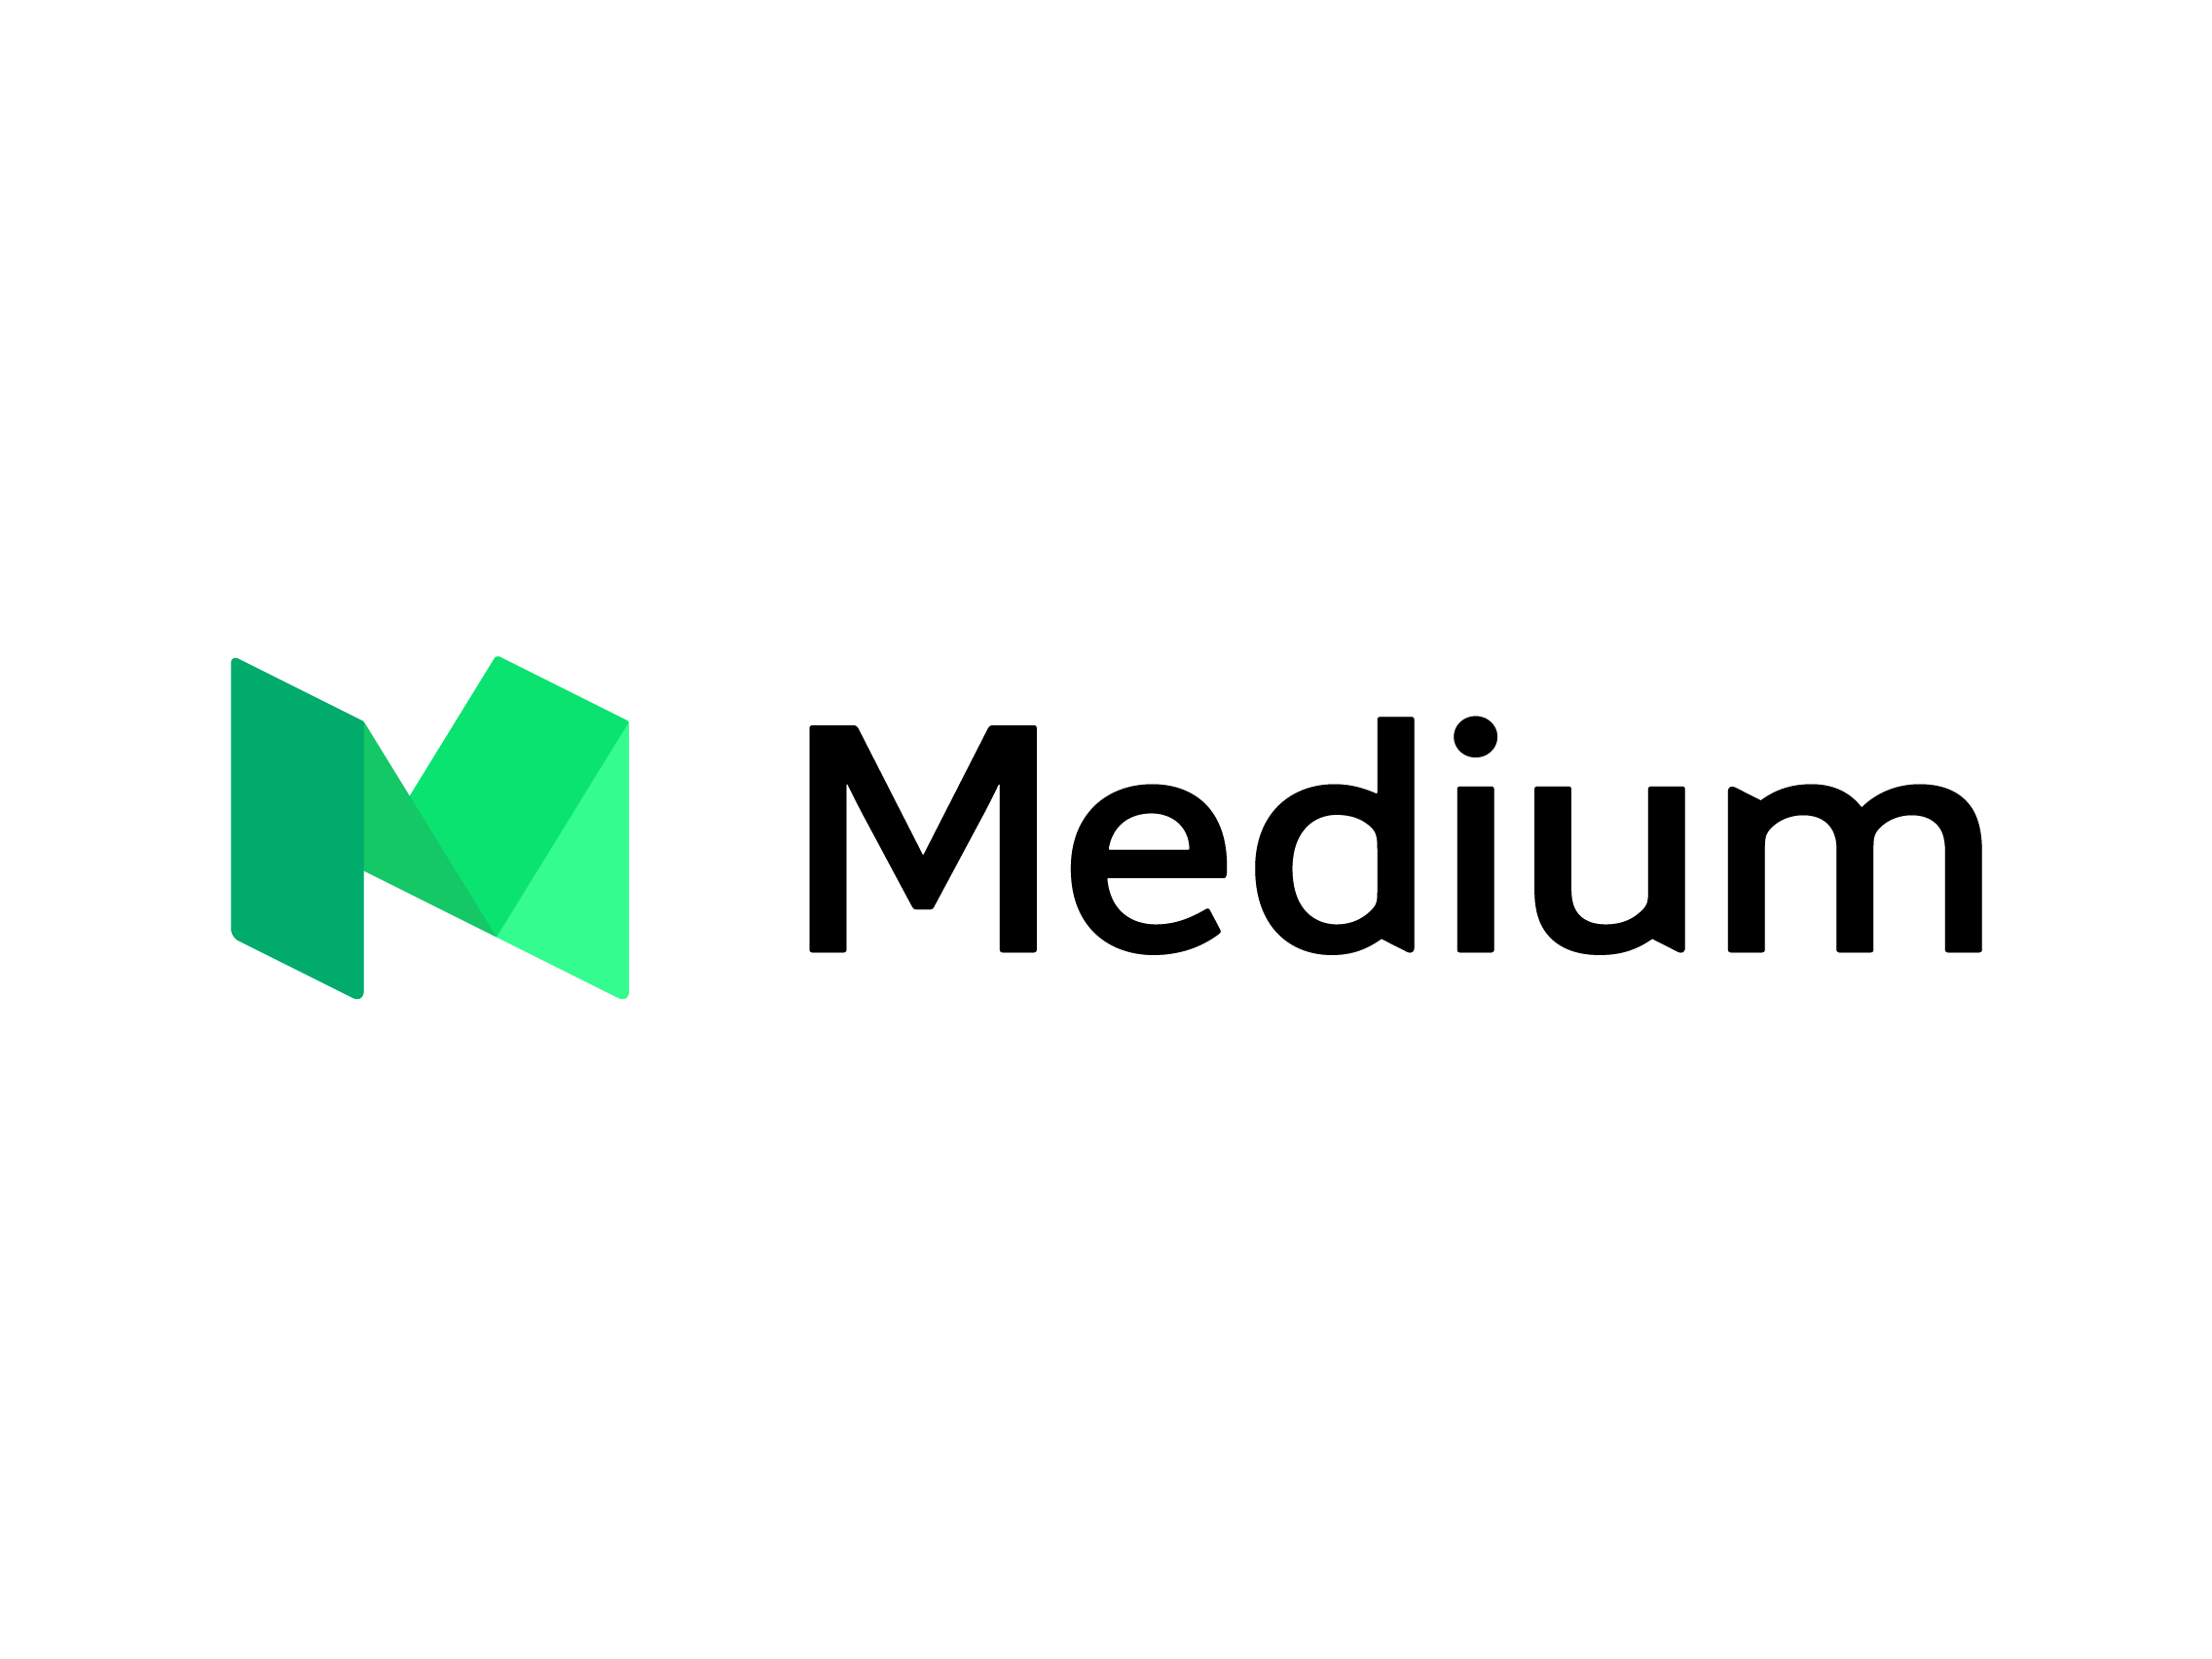 Medium logo 2015 logotype - Logok